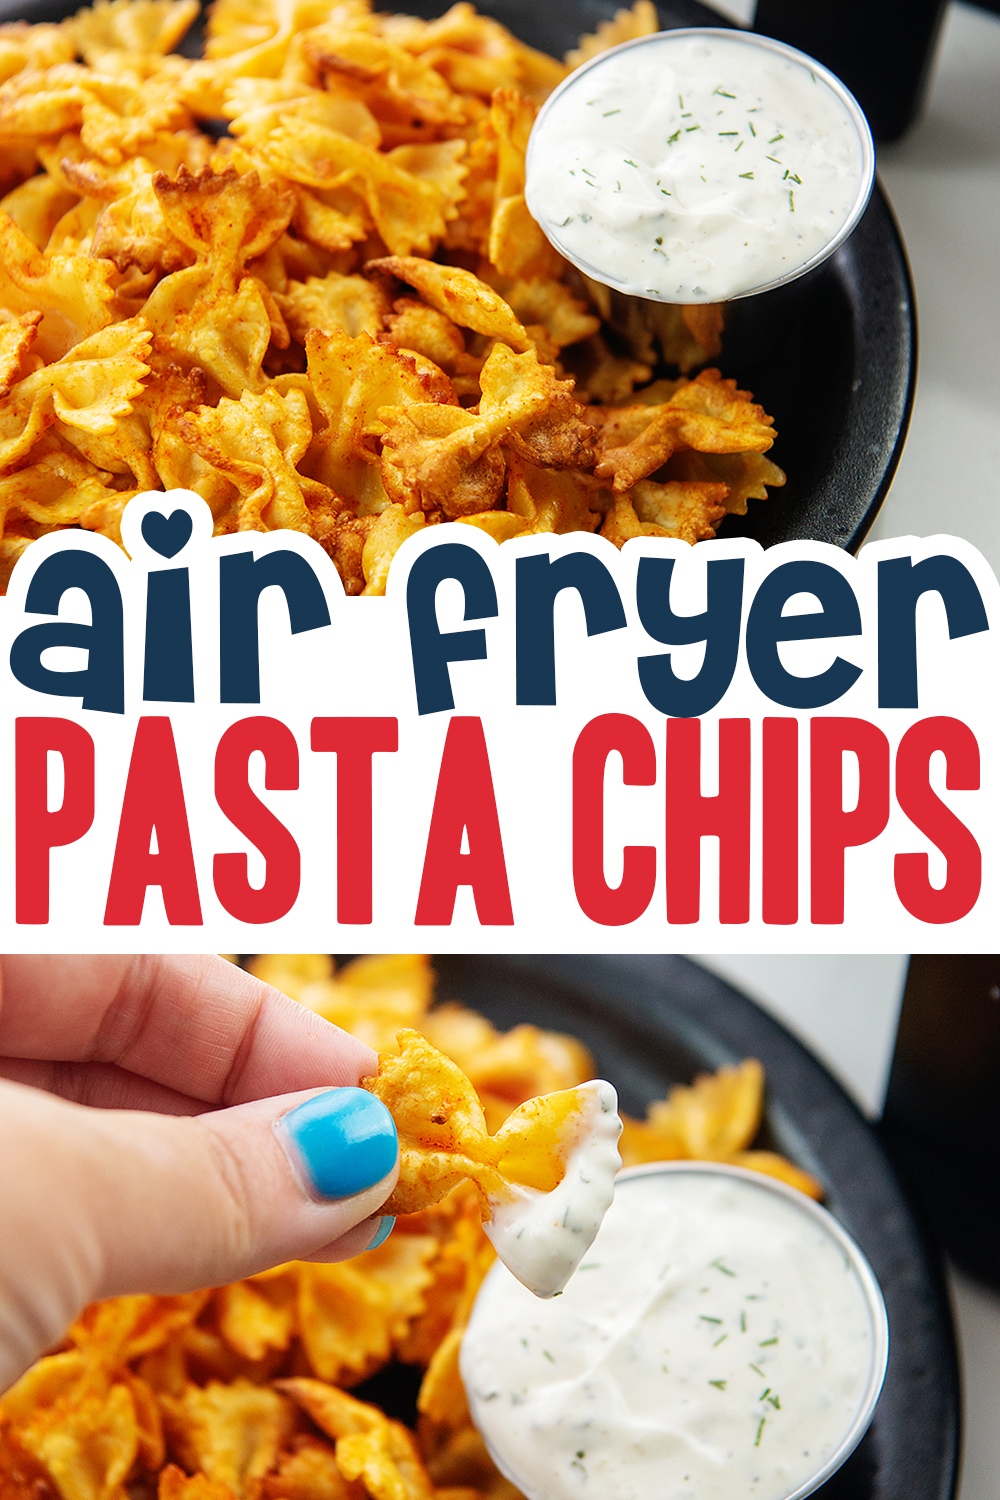 This viral TikTok trend is so fun to make! Pasta chips in the air fryer...we seasoned them with wing sauce and ranch dip!